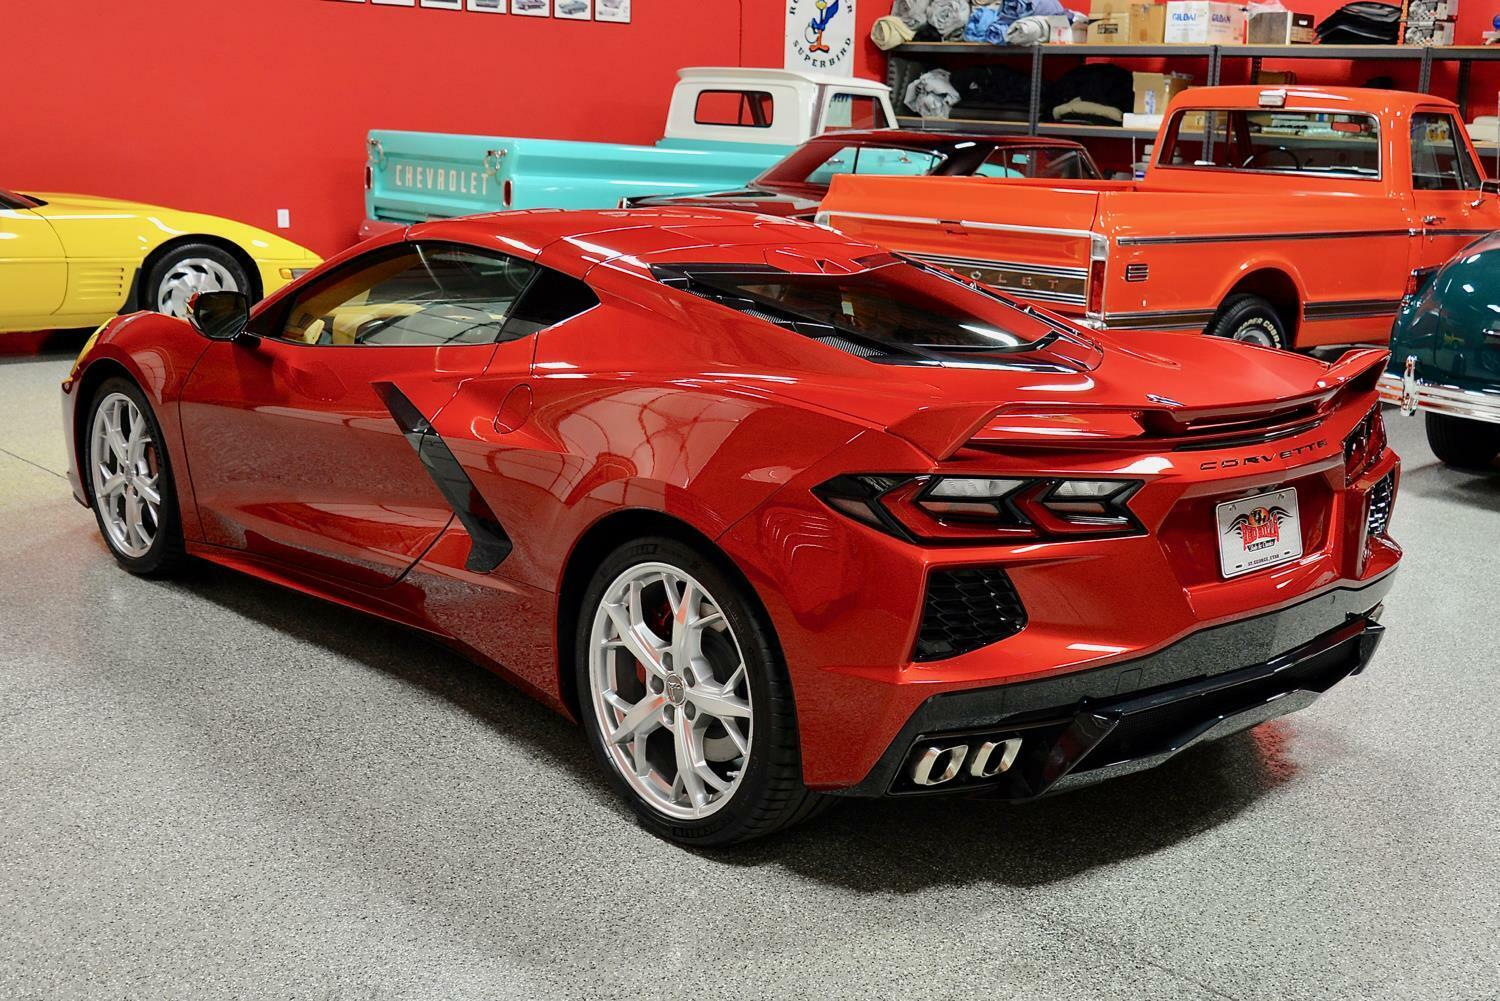 2021 Red Chevrolet Corvette  3LT | C7 Corvette Photo 8